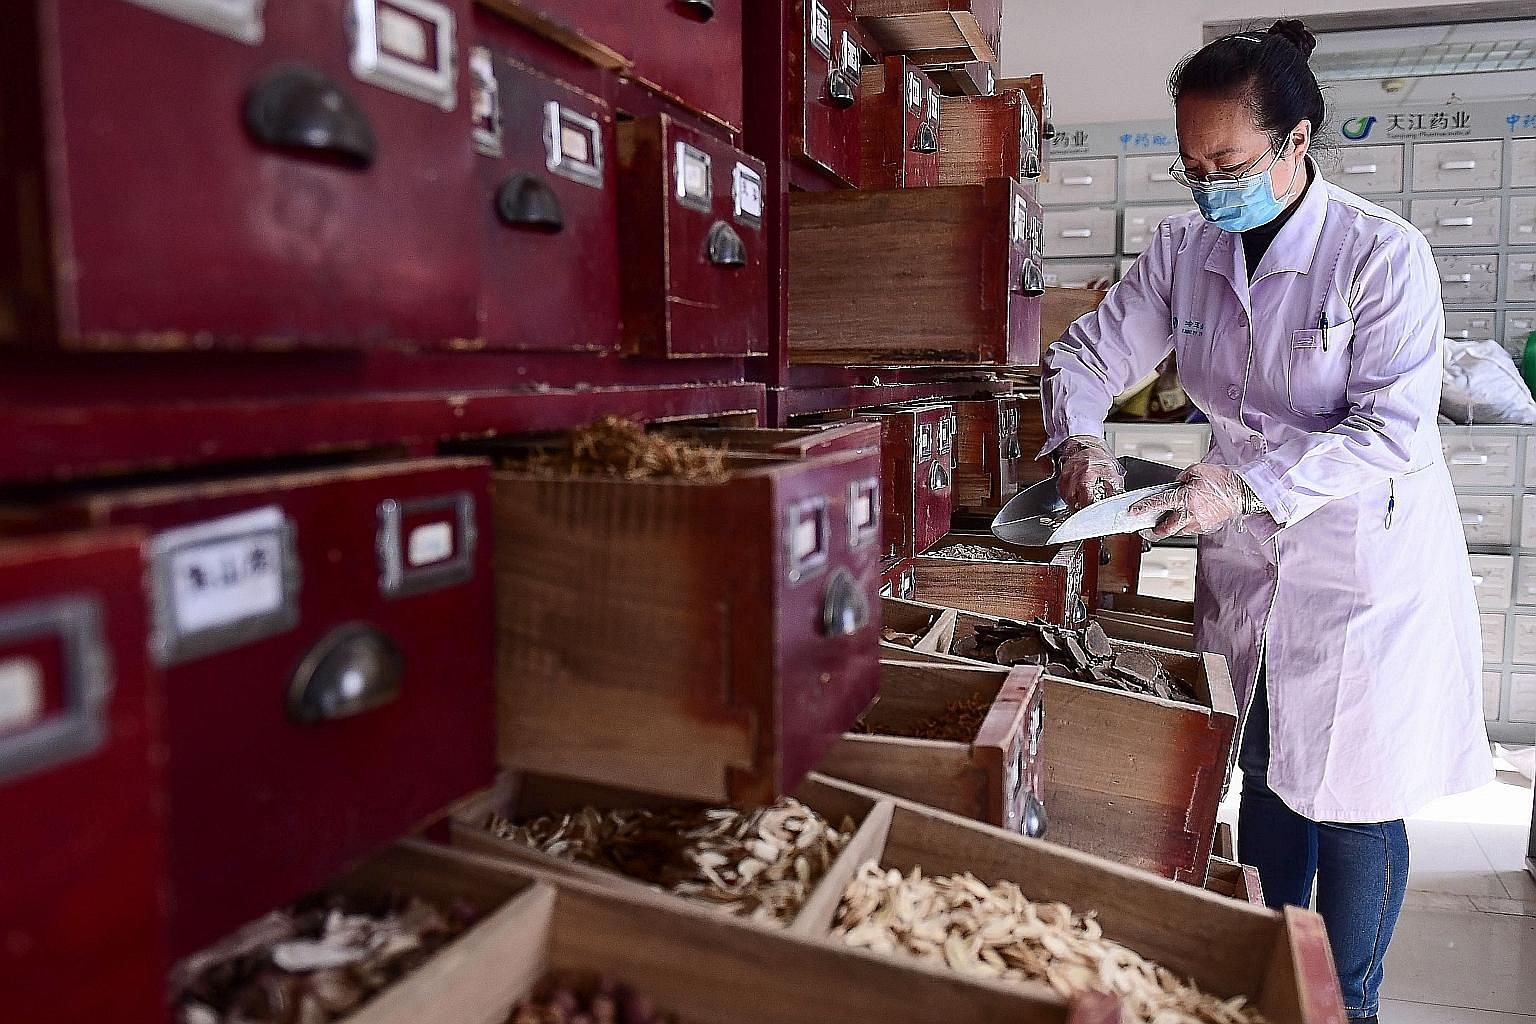 A staff member preparing traditional Chinese medicine at a Liaoning hospital on Thursday. China has turned to TCM along with Western treatment as part of clinical trials to overcome the coronavirus epidemic.